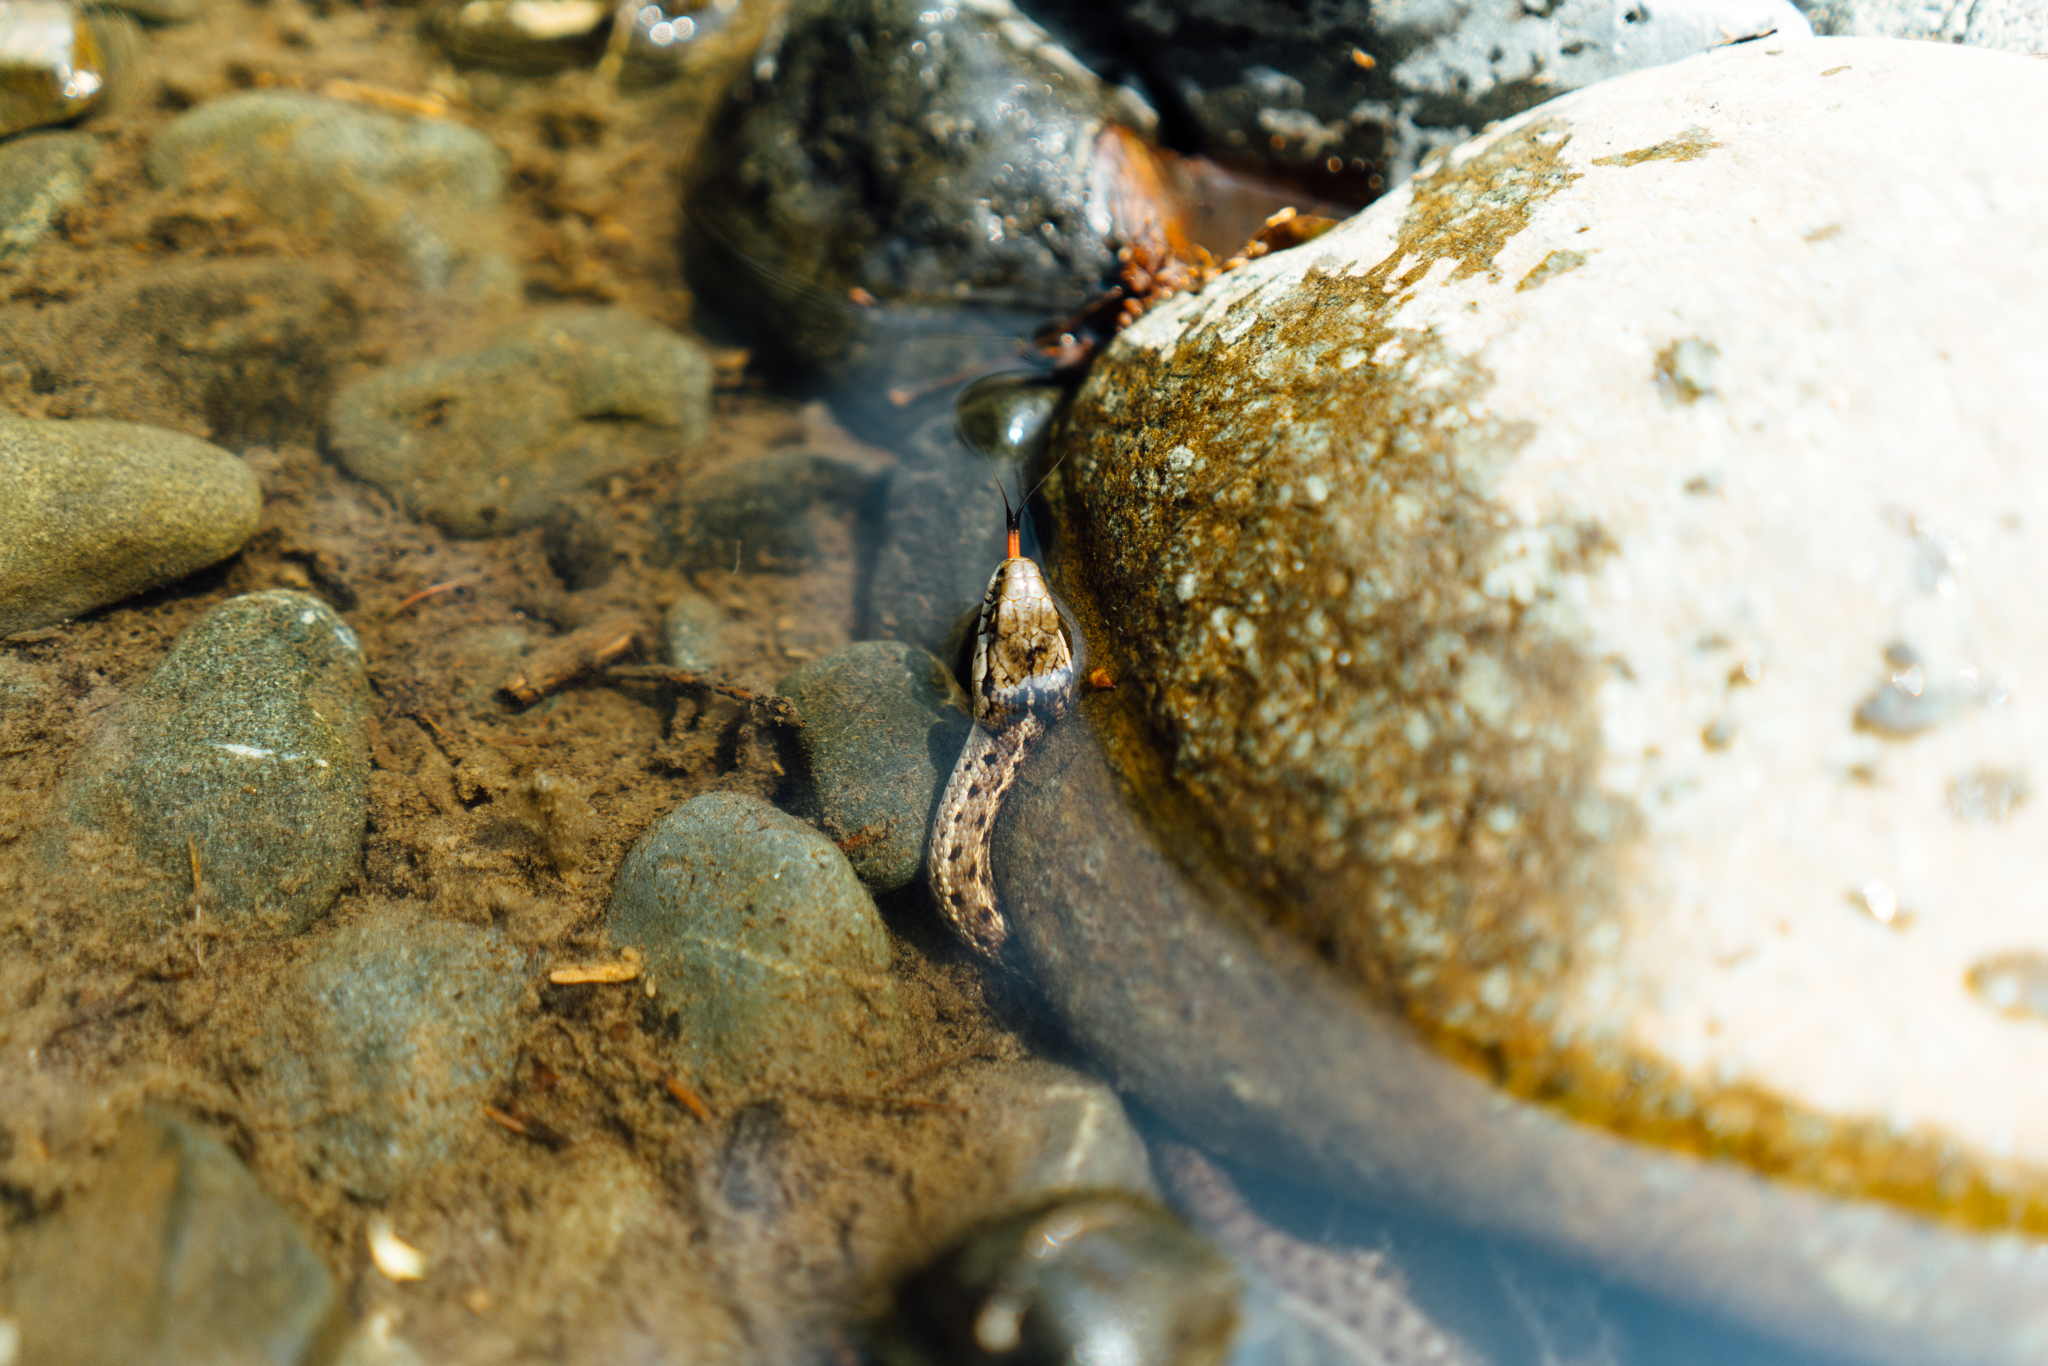 Photograph of a Garter Snake in the Teanaway River near Cle Elum, Washington